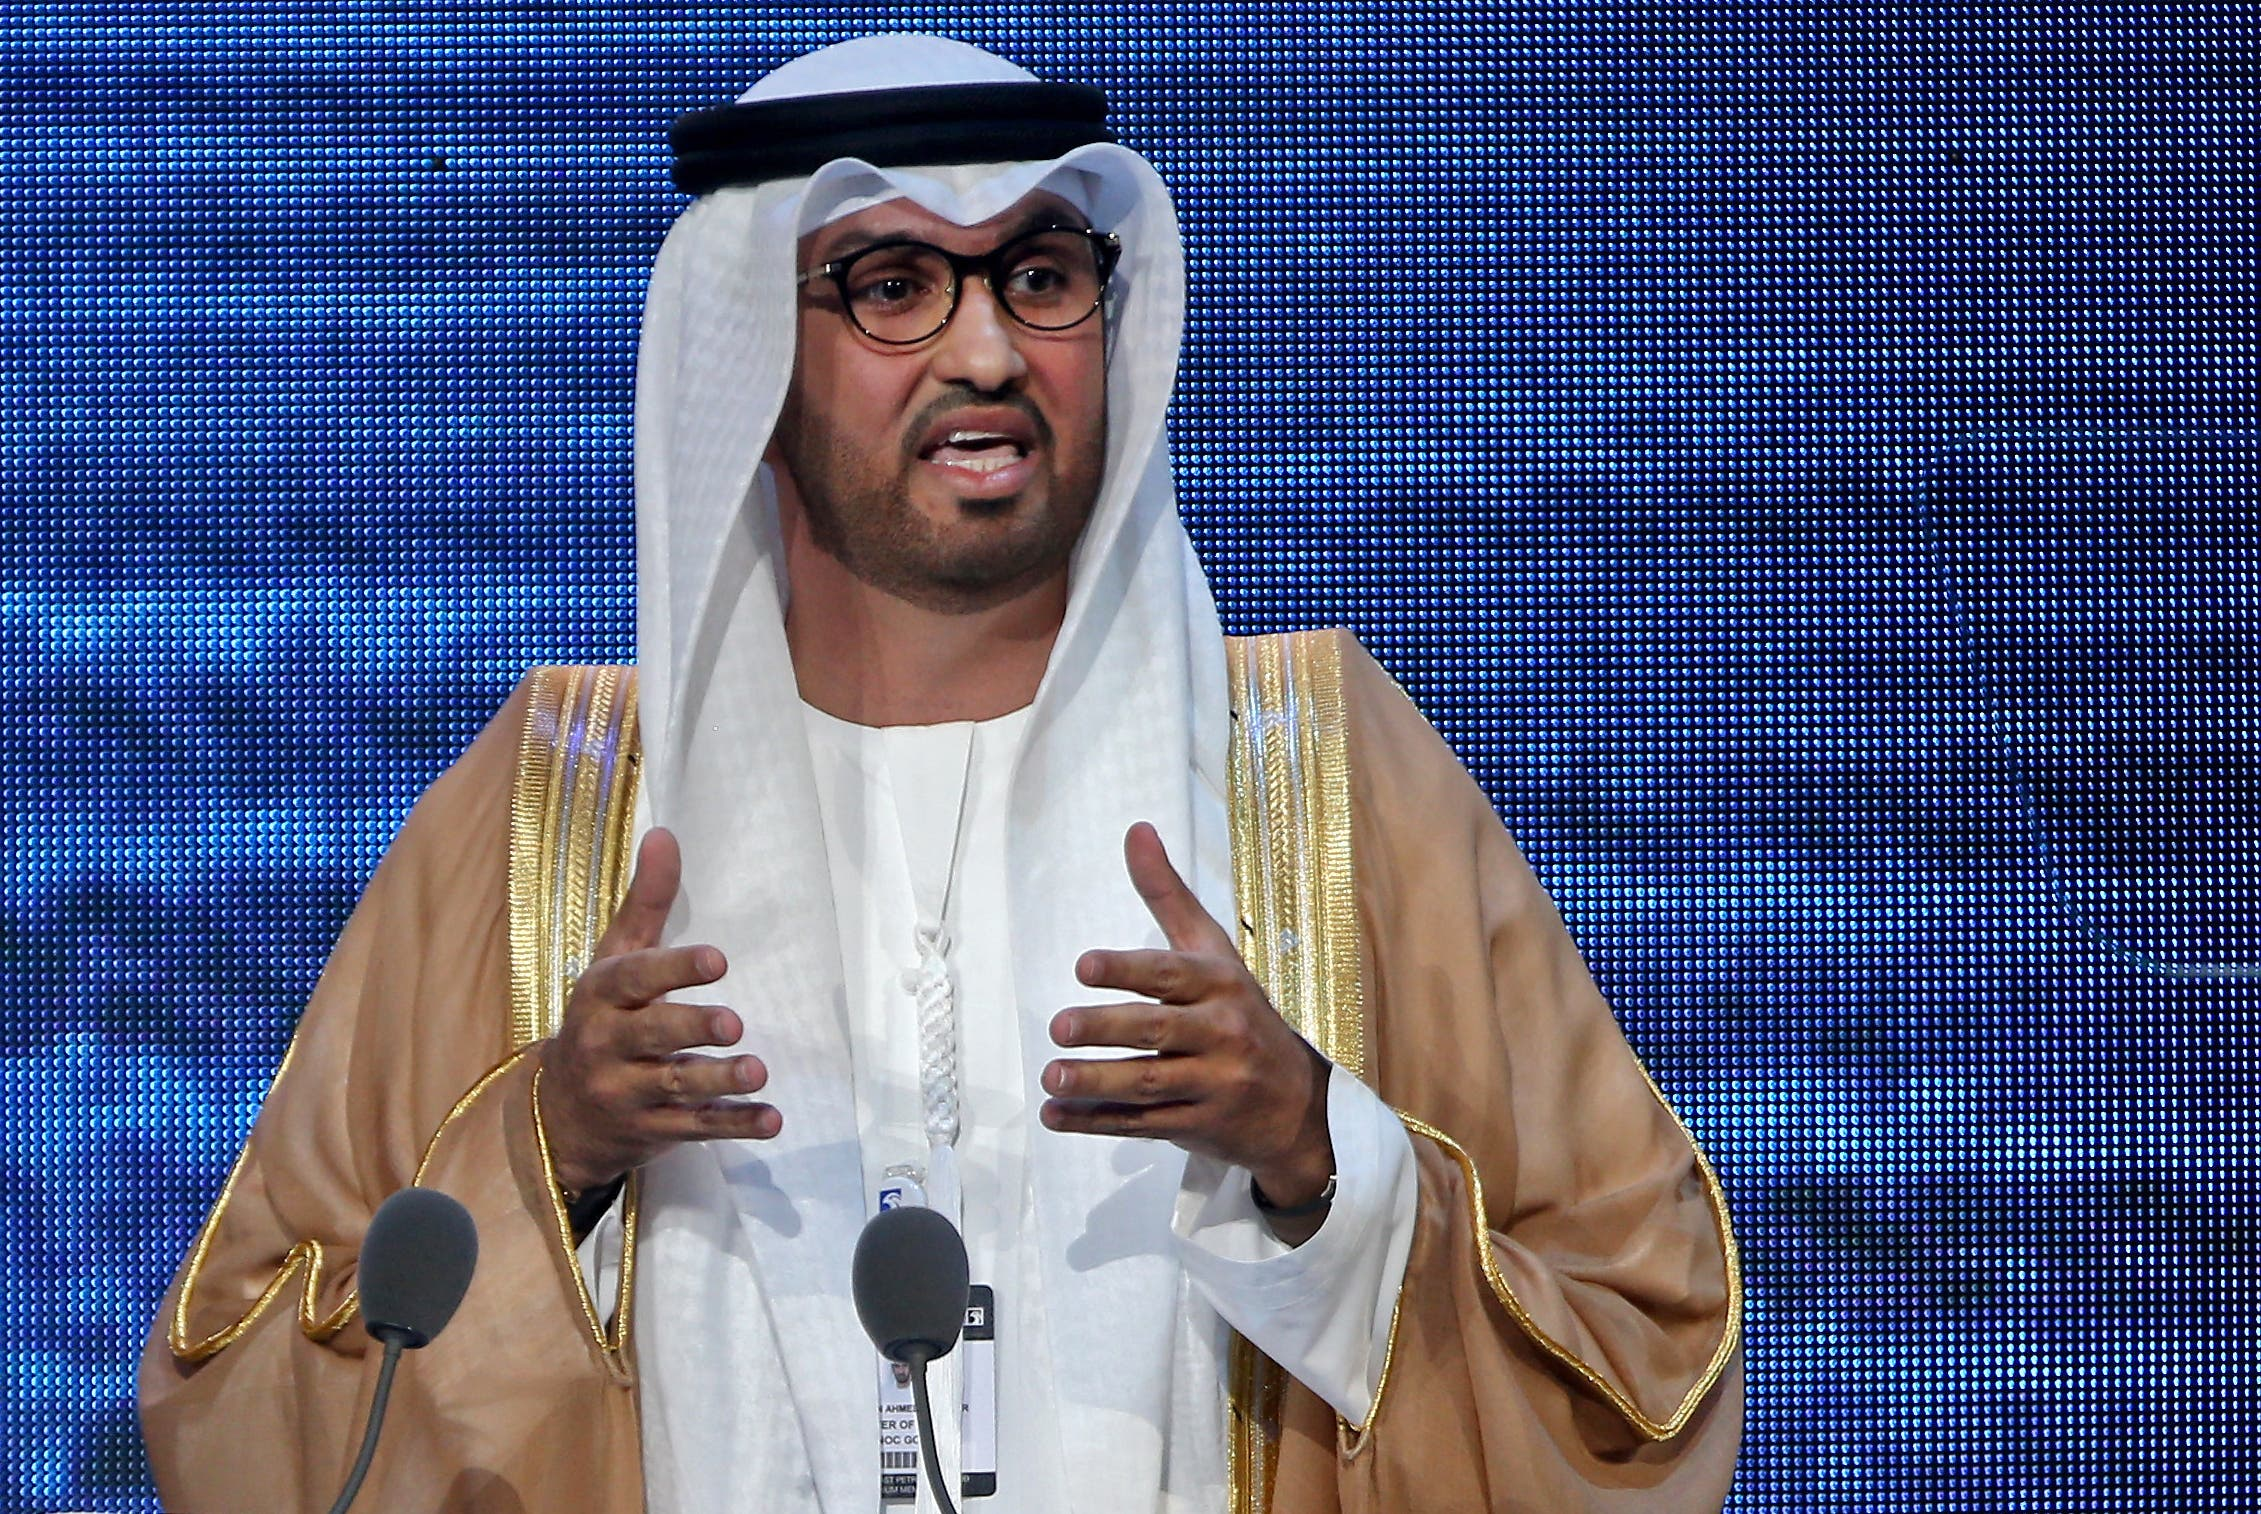 Sultan Ahmed Al-Jaber, of the Abu Dhabi National Oil Company (ADNOC), was named second in the list. (File photo: AFP)